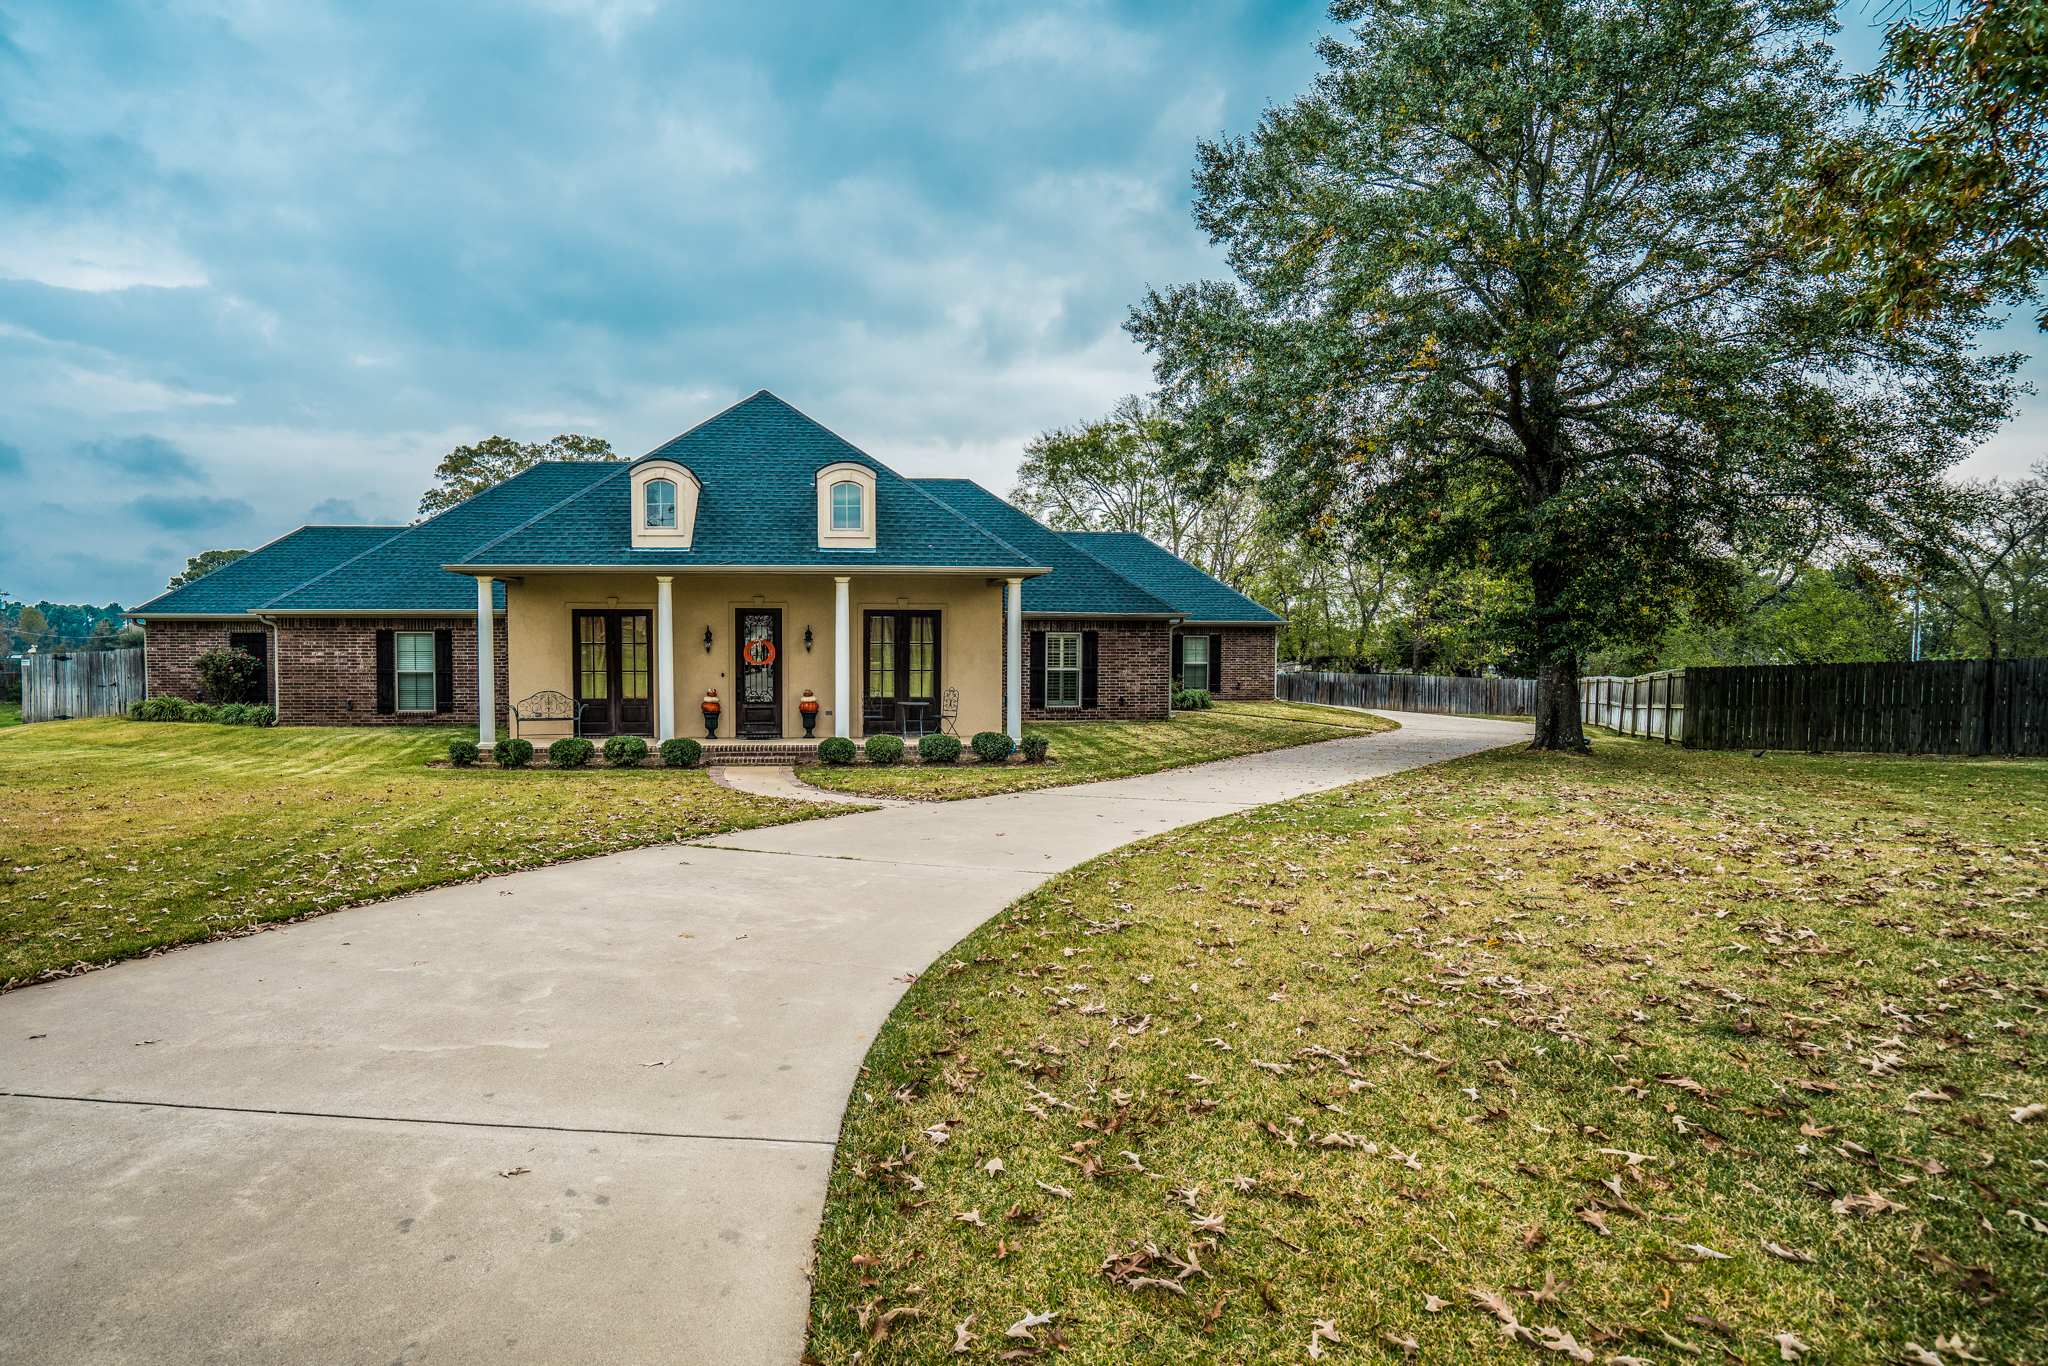 2105 McDade - Yumba Real Estate Photography in Longview, TX